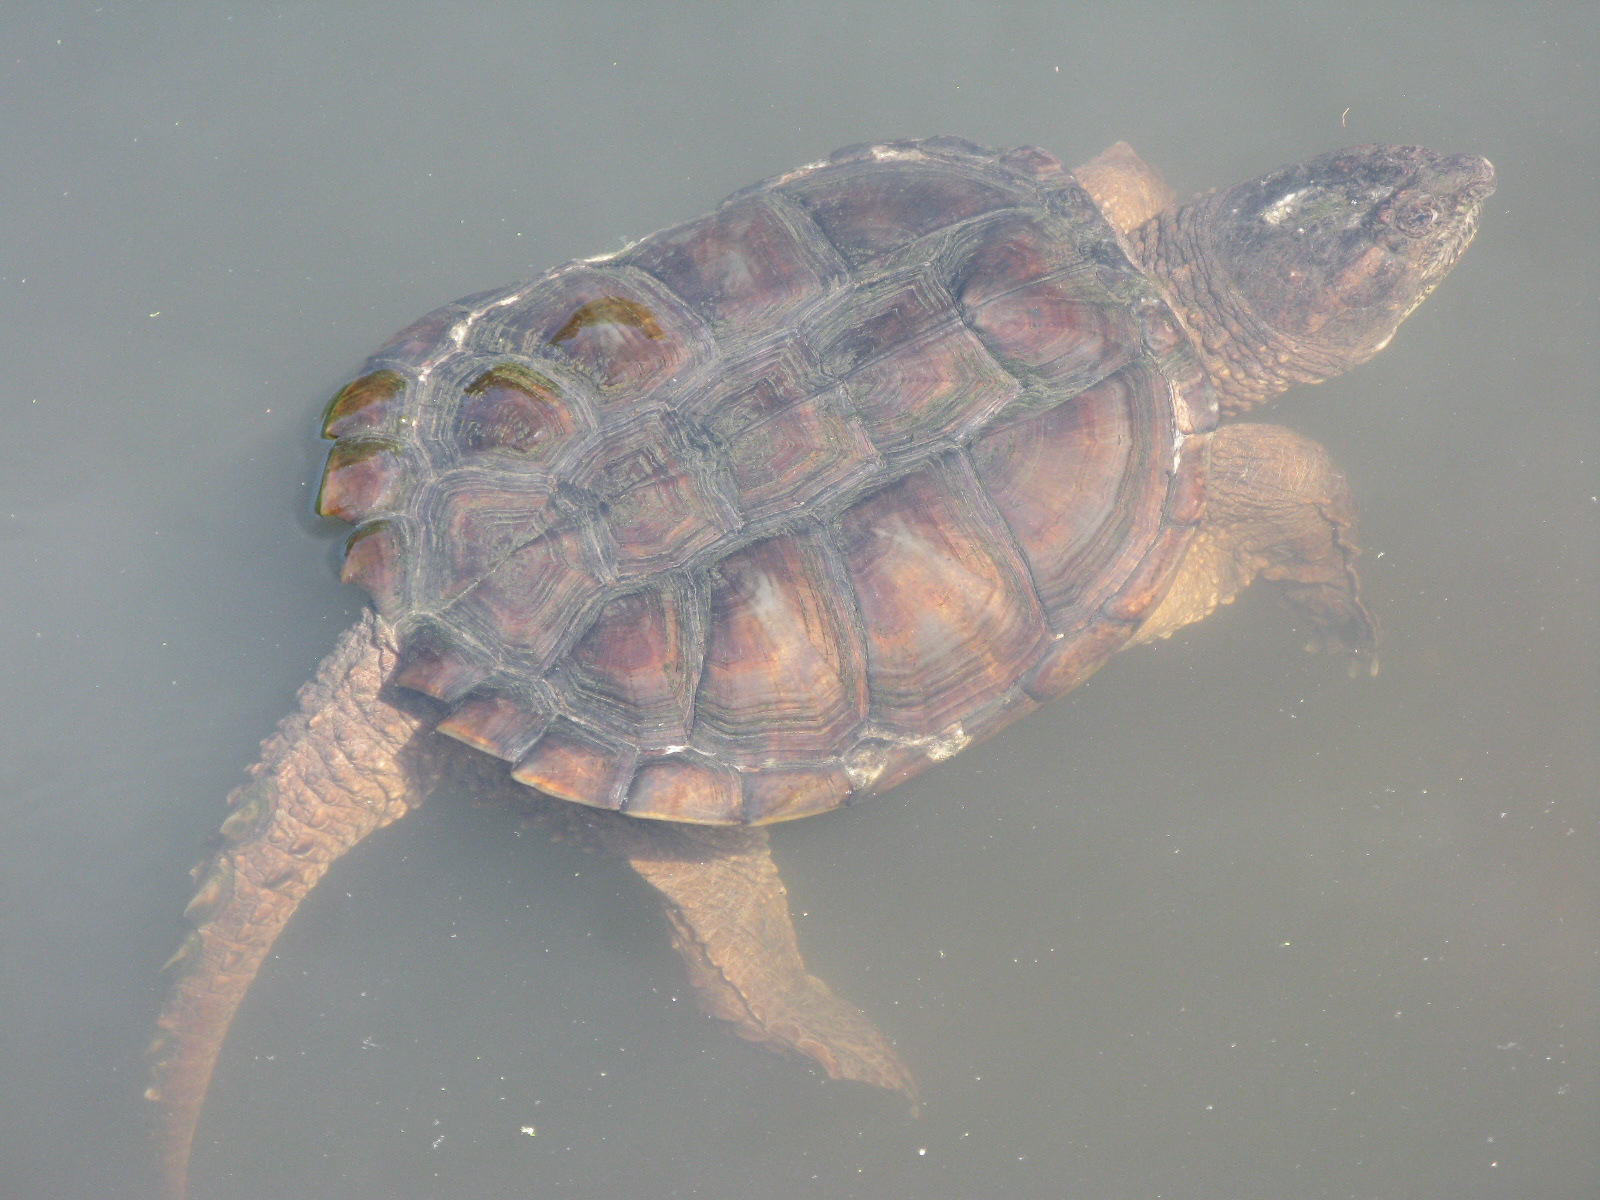 Baby Turtle In Water Not the kind of turtle to run